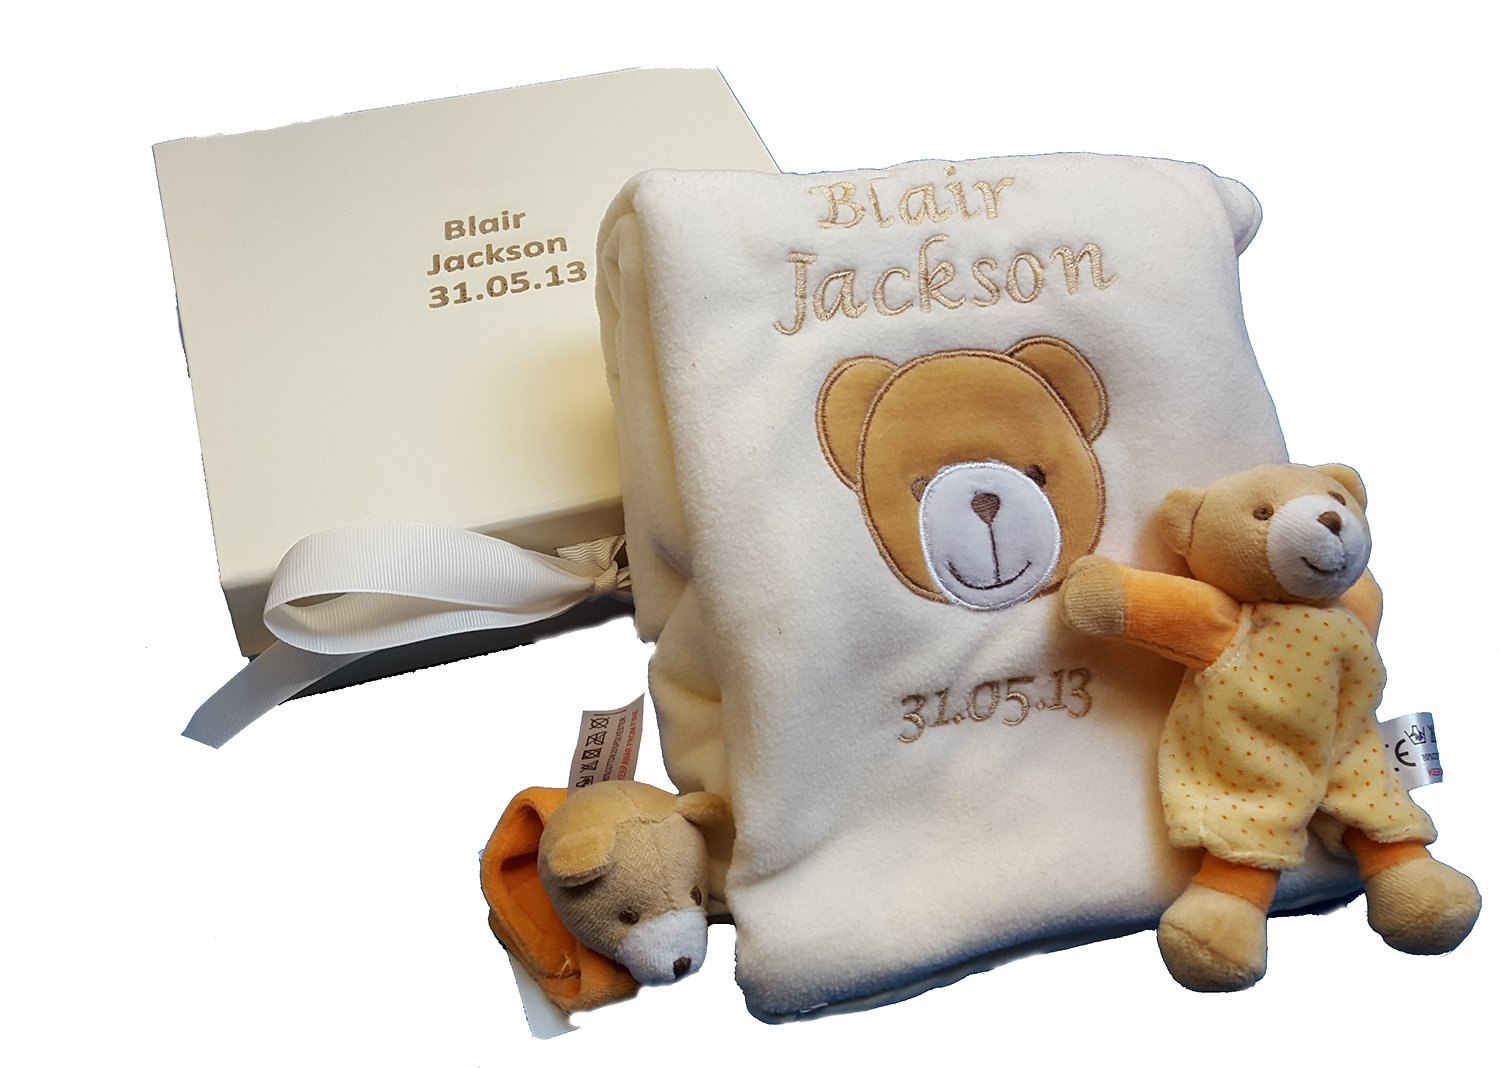 Personalised Embroidered Appliquéd Baby Blanket with name Newborn Gift Set with teddy + wrist rattle in keepsake box Hoolaroo